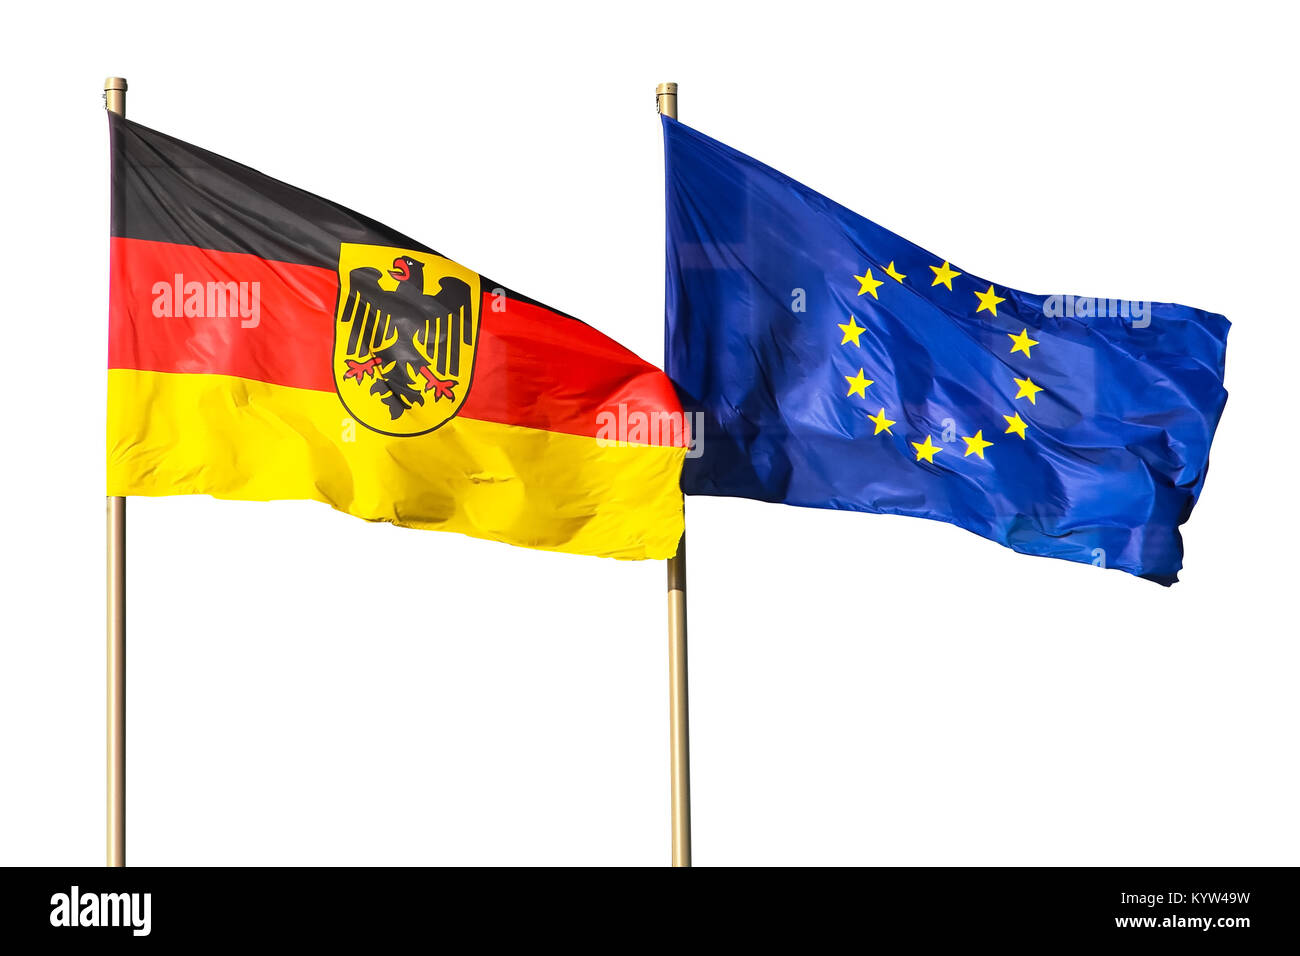 Flags of Germany (Federal Republic of Germany; in German: Bundesrepublik Deutschland) and the European Union (EU) - Stock Image